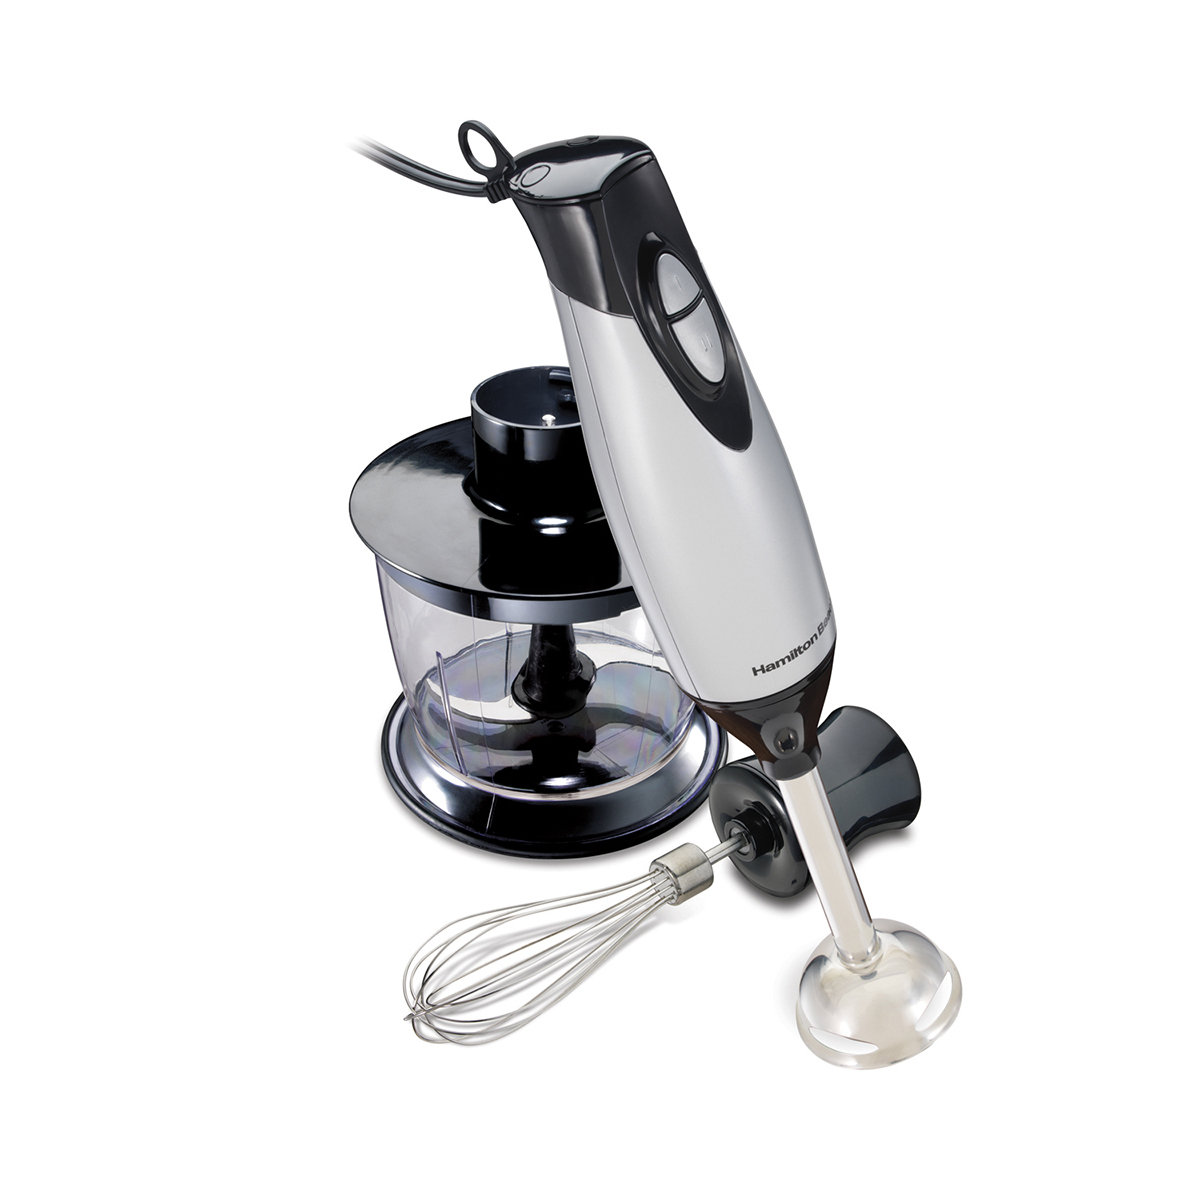 2 Speed Hand Blender with whisk and chopping bowl (59765)